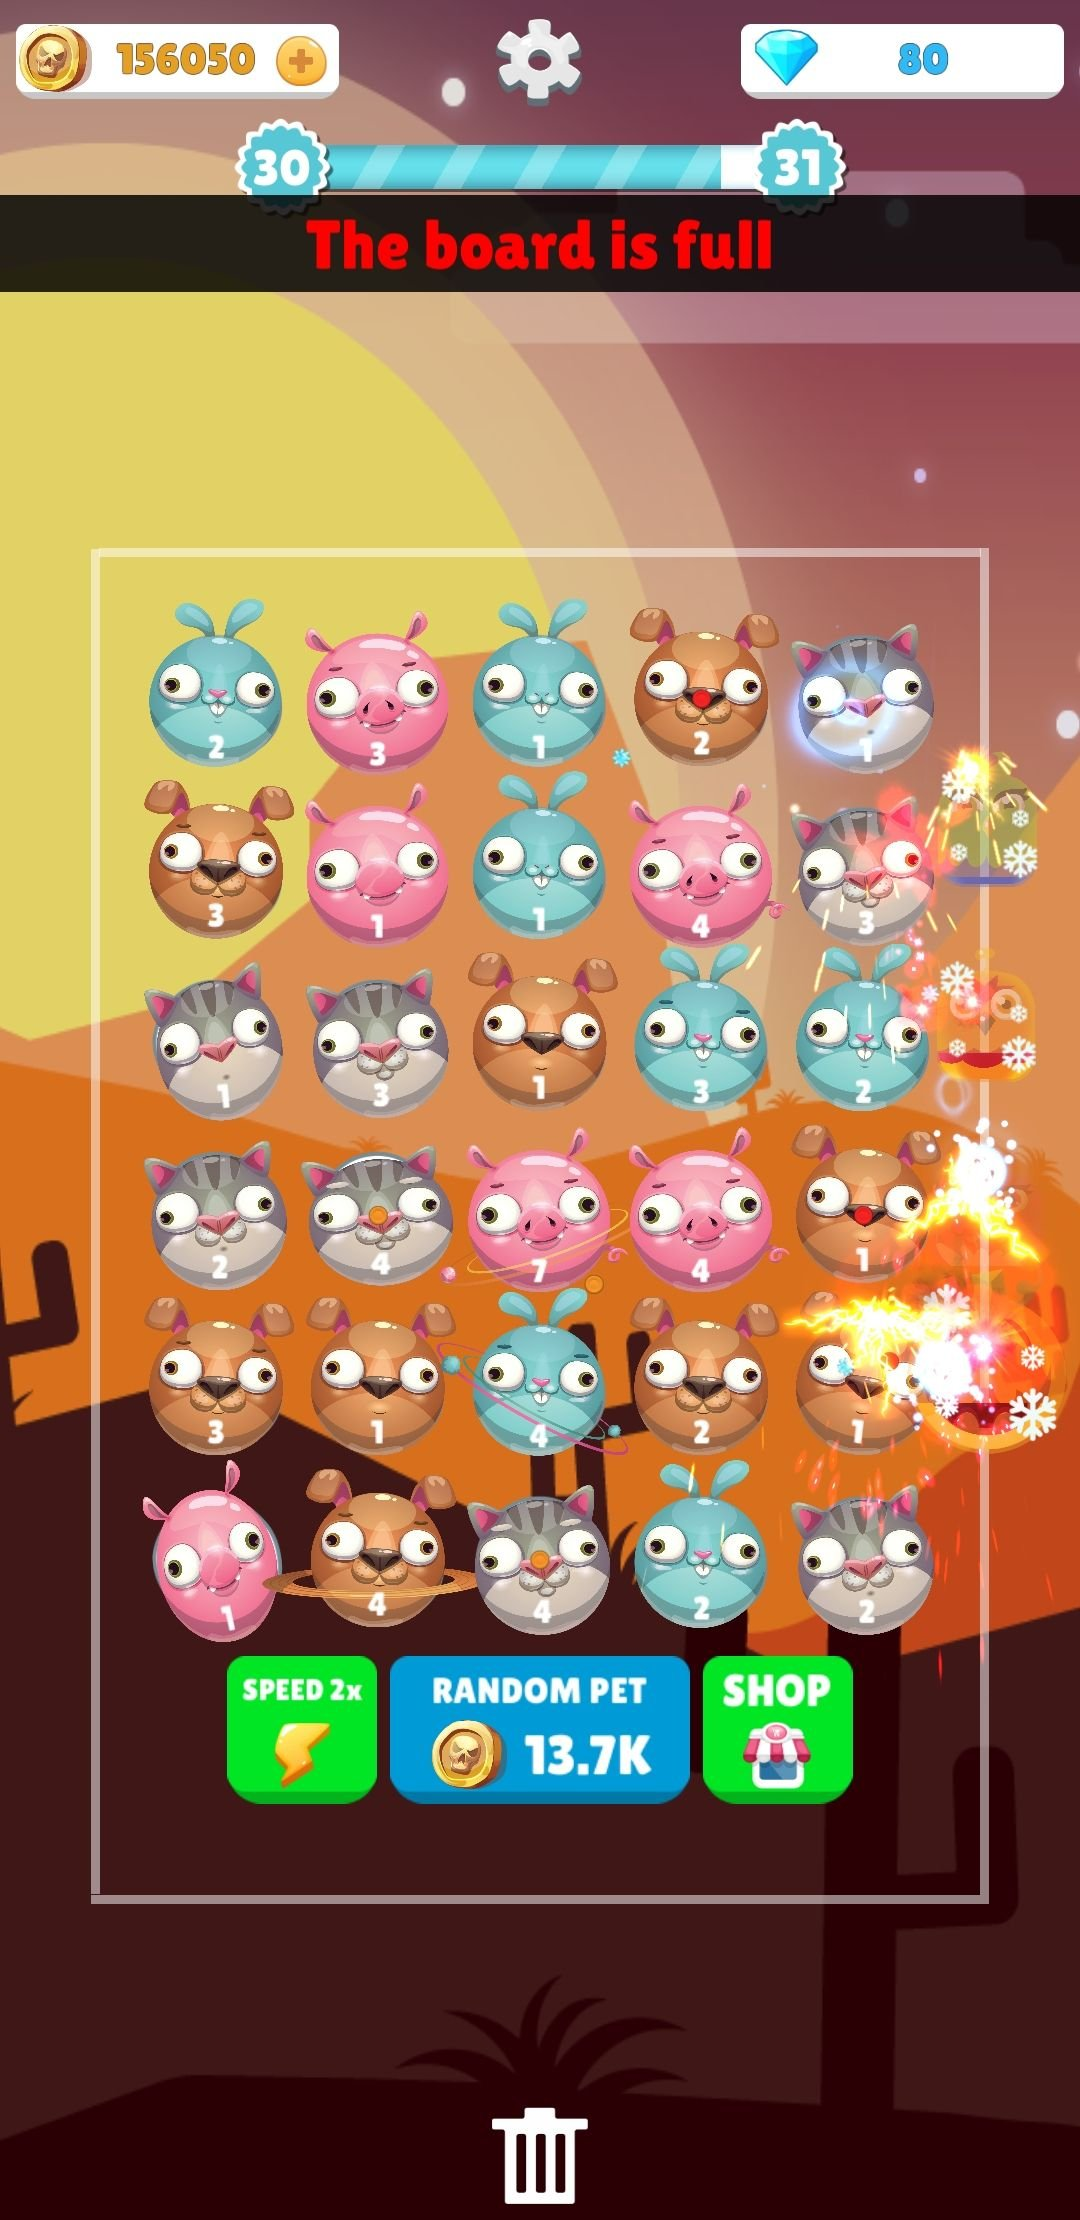 Merge Animals - Tower Defense Unity Project Screenshot 6